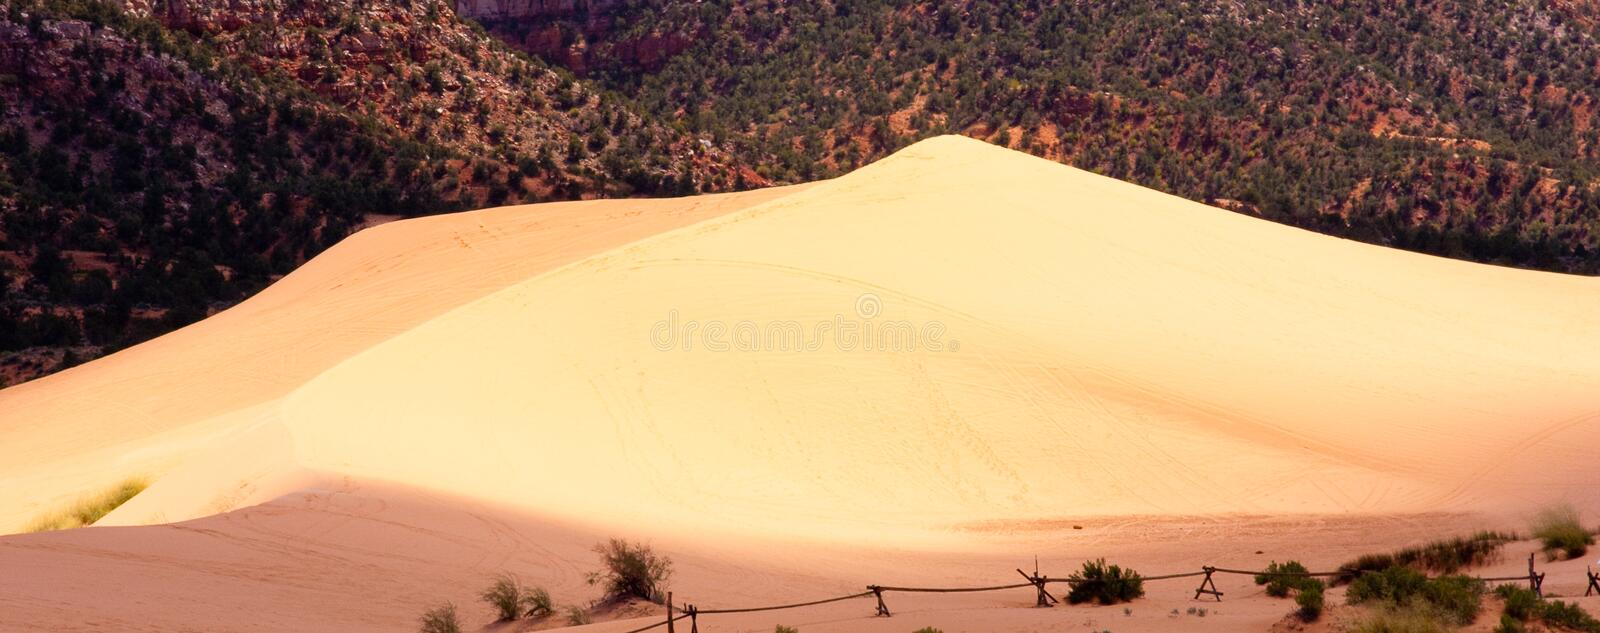 Download Coral Pink Sand Dunes stock image. Image of outdoor, park - 11758935